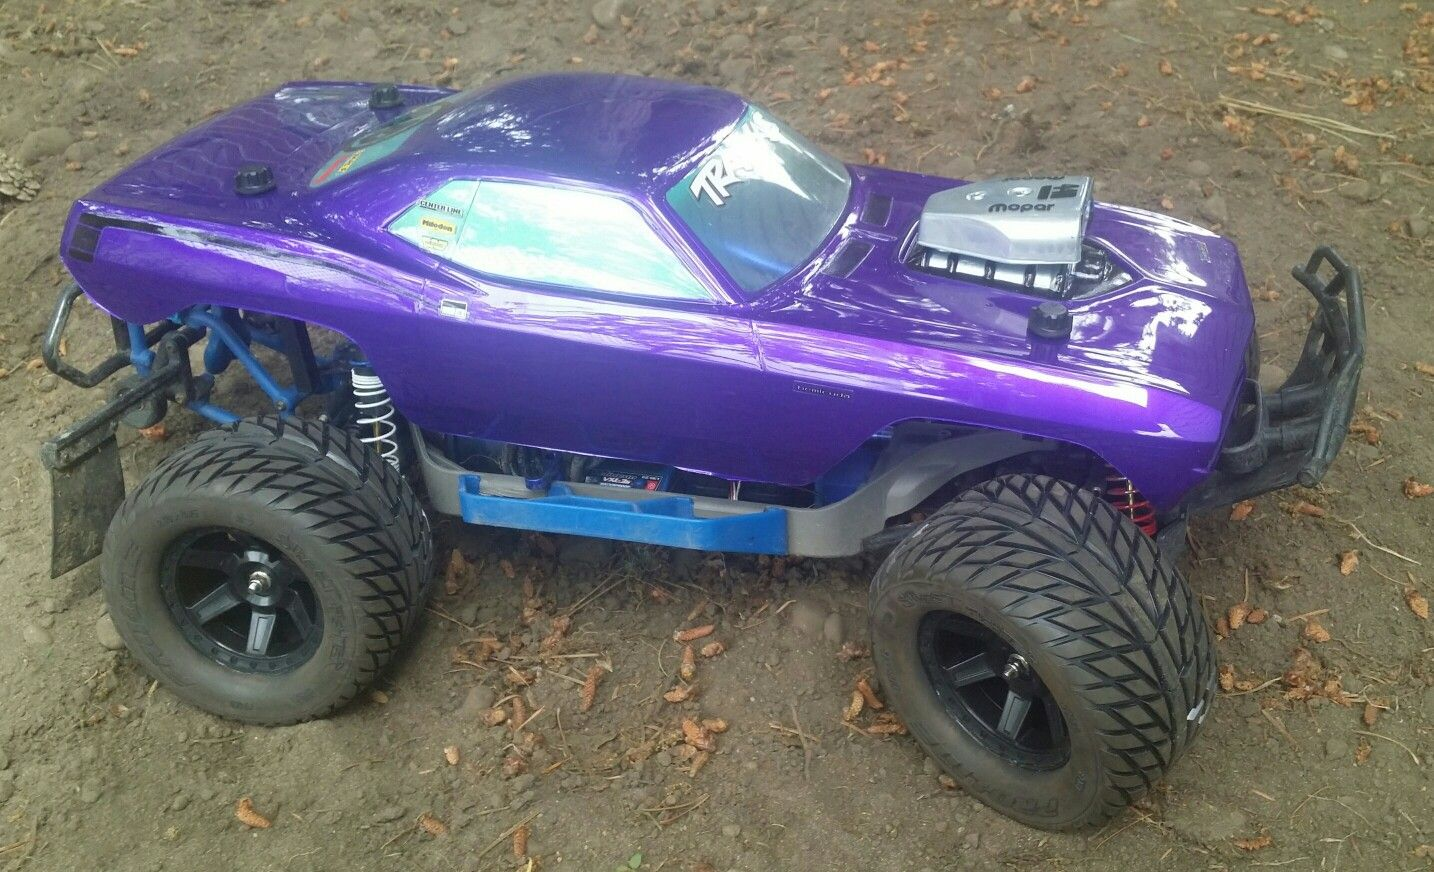 Modified Traxxas Slash 4x4 with Proline street tires and HPI